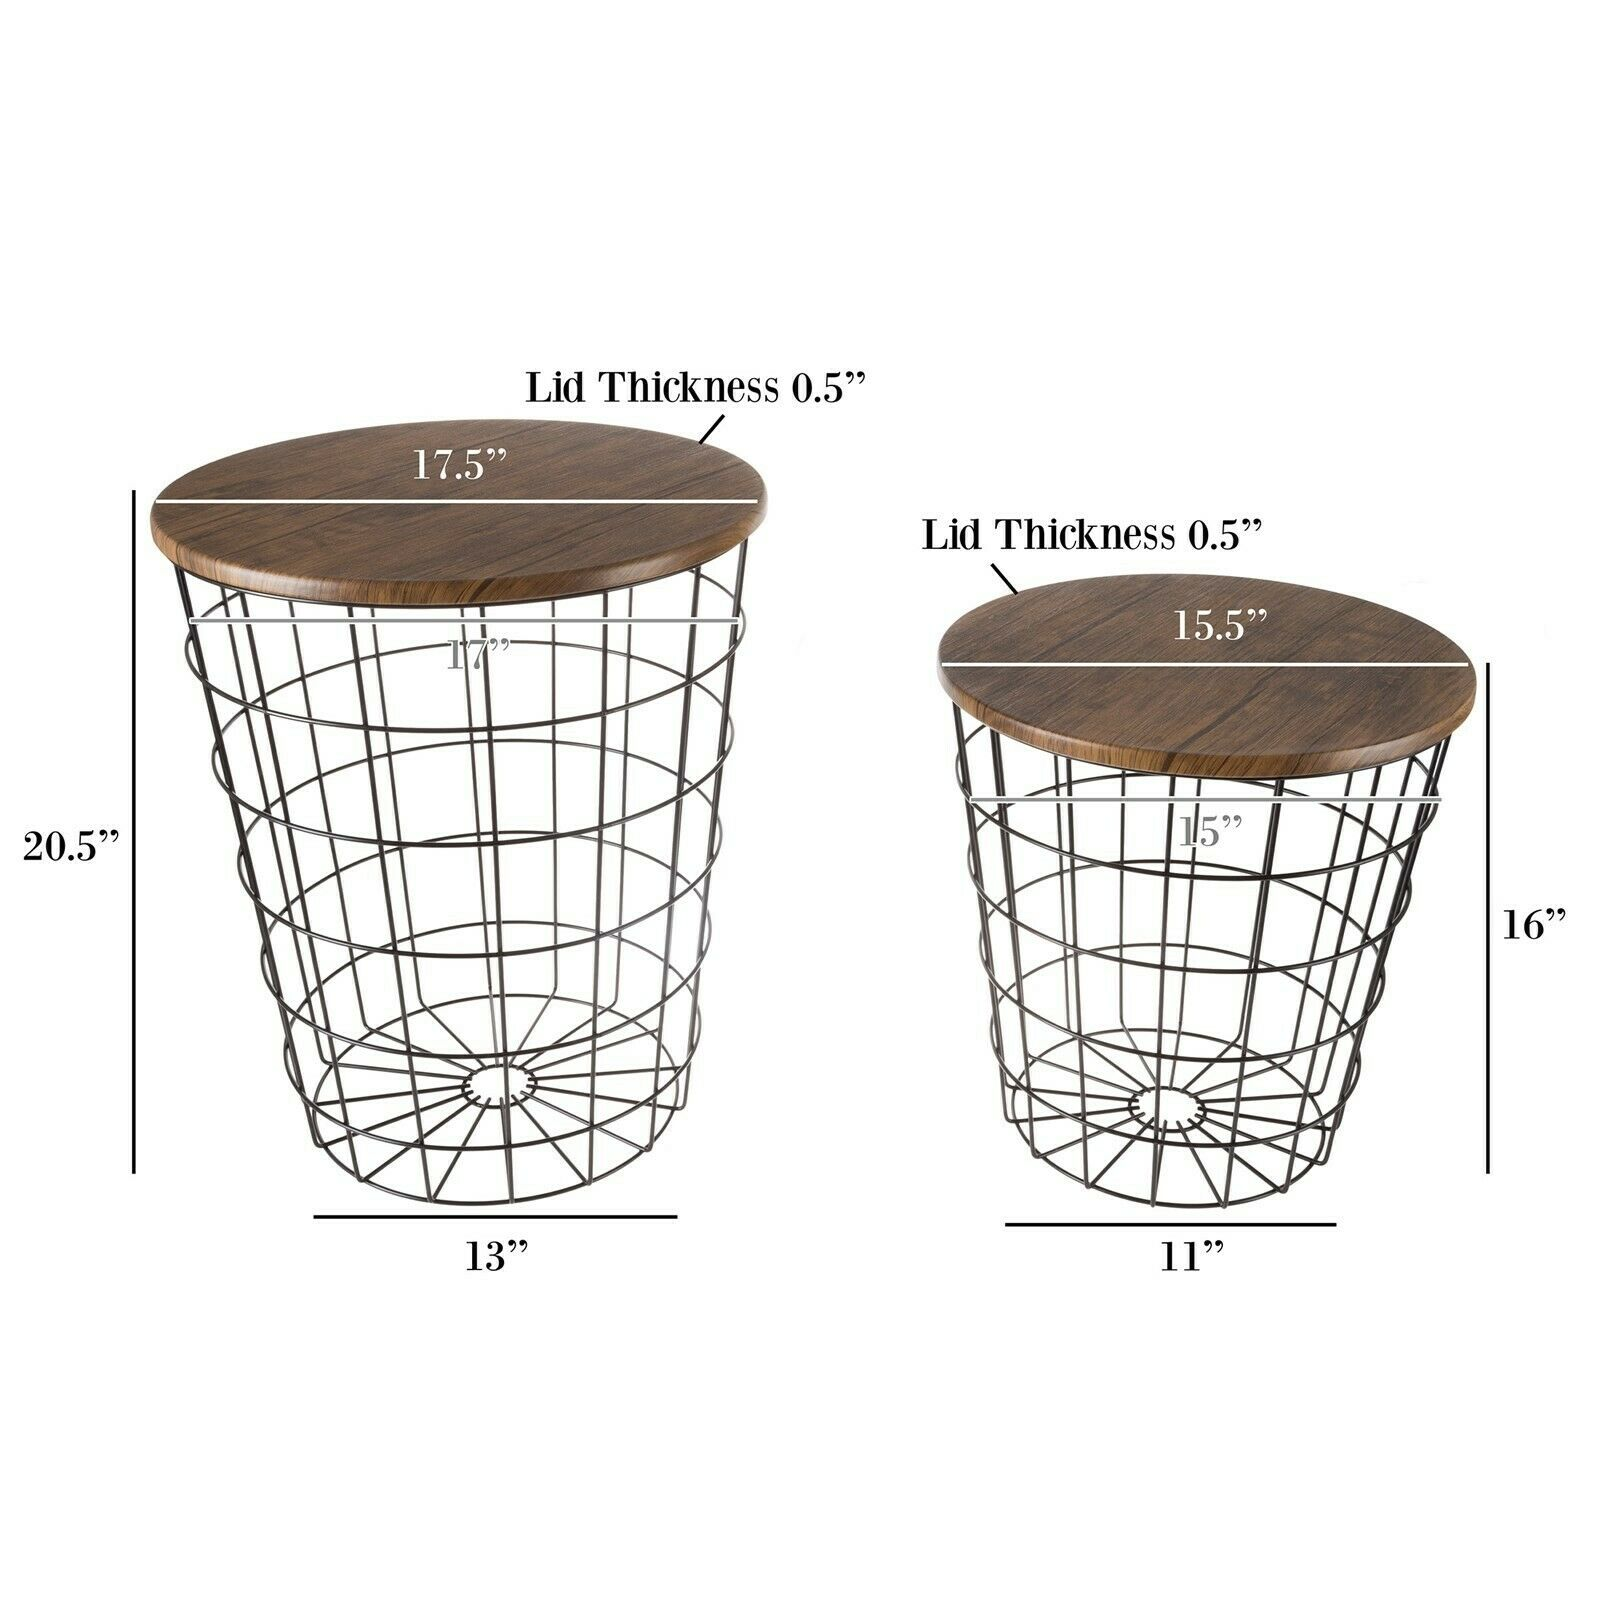 2 Convertible Nesting End Tables Metal Basket Wooden Top Home Office Furniture www.5stardeal.com